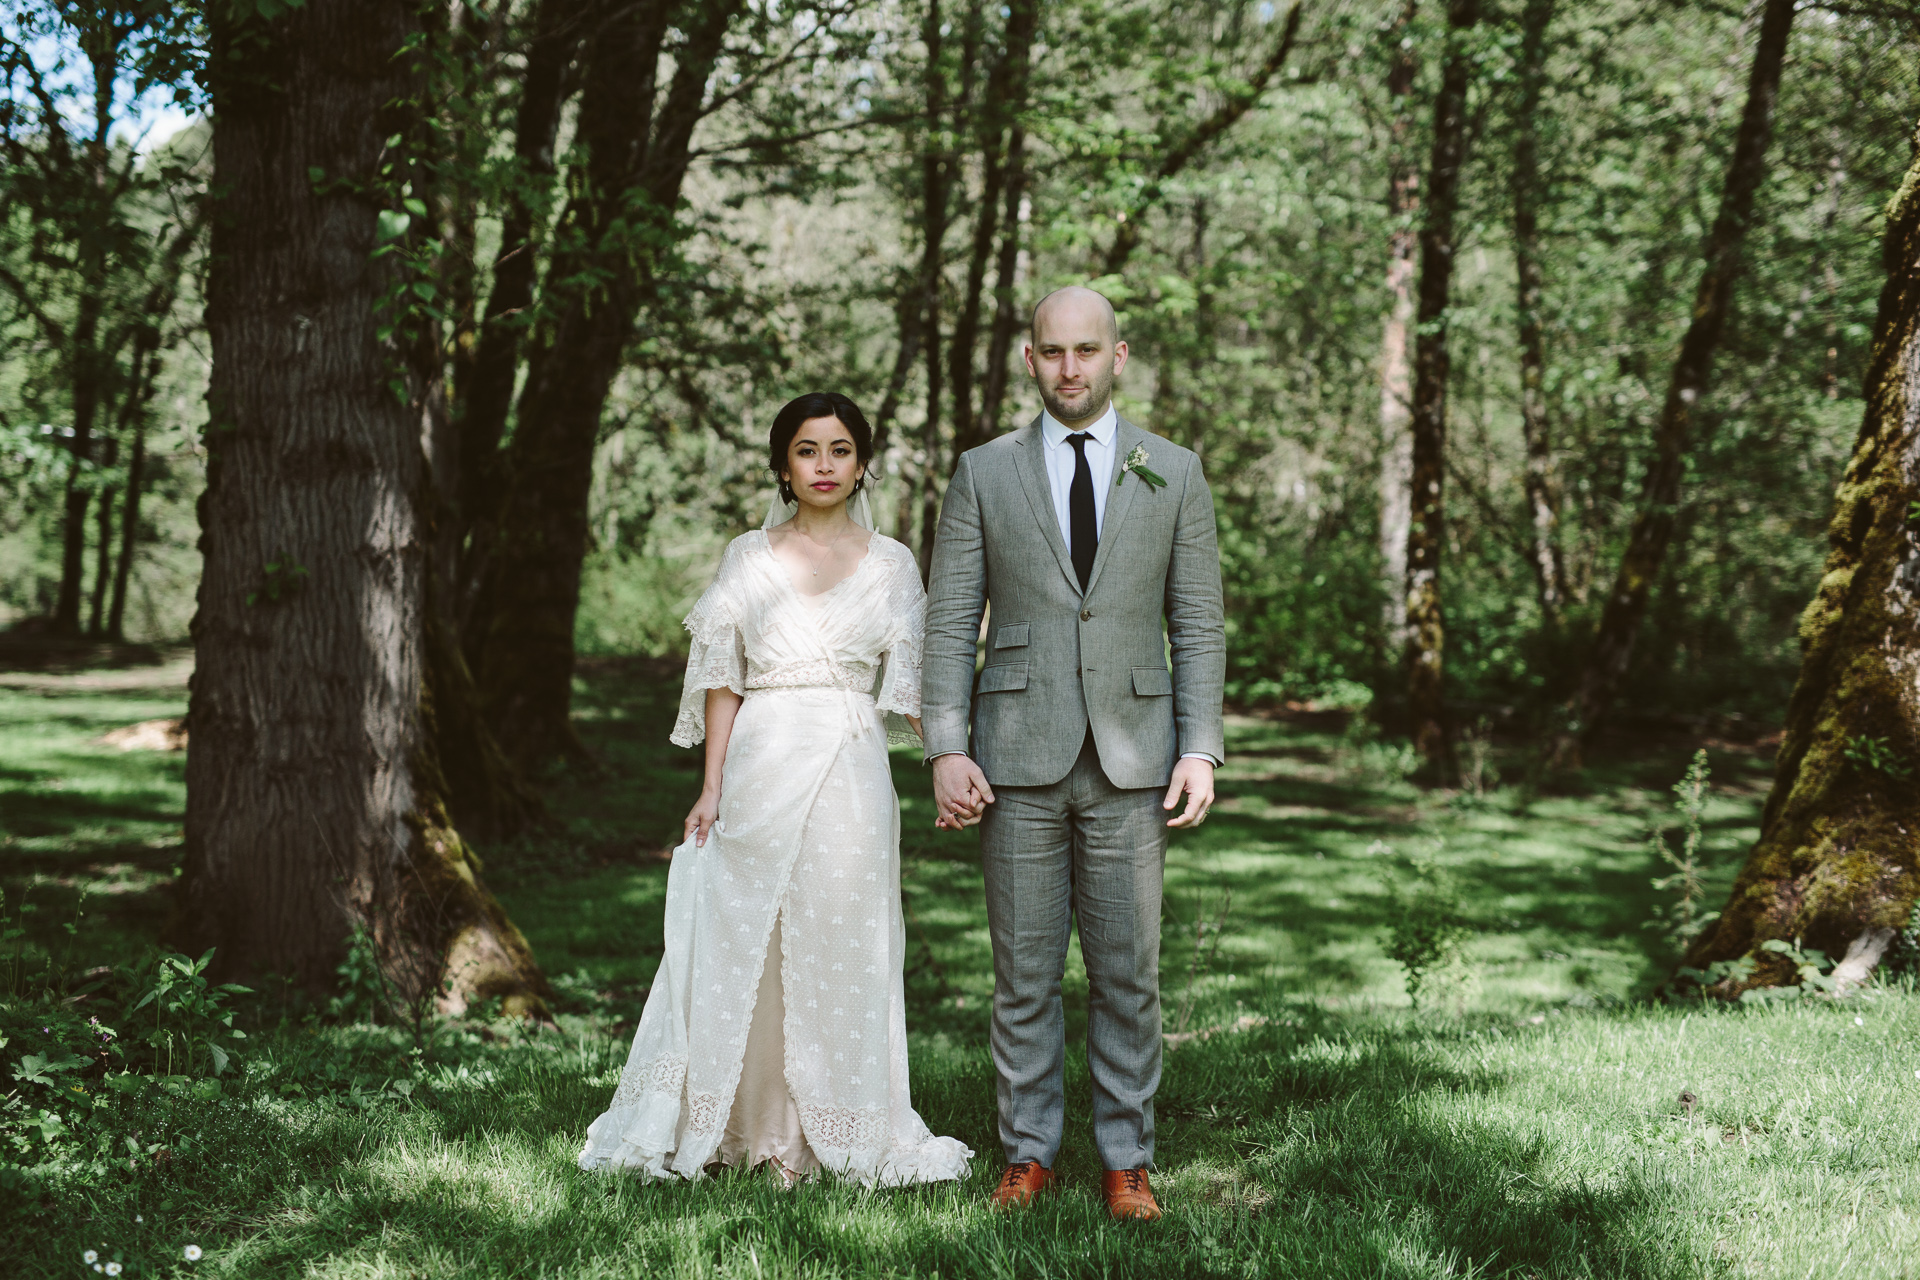 photography by Jess Hunter, intimate Portland wedding photographer, botanical inspired wedding in Portland, OR at a pioneer church, vintage lace wedding dress, hipster Portland wedding, elopement in the forests of Oregon, forest bride, vintage bridal style, Jessica L Hunter, Seattle elopement photographer, PDX wedding